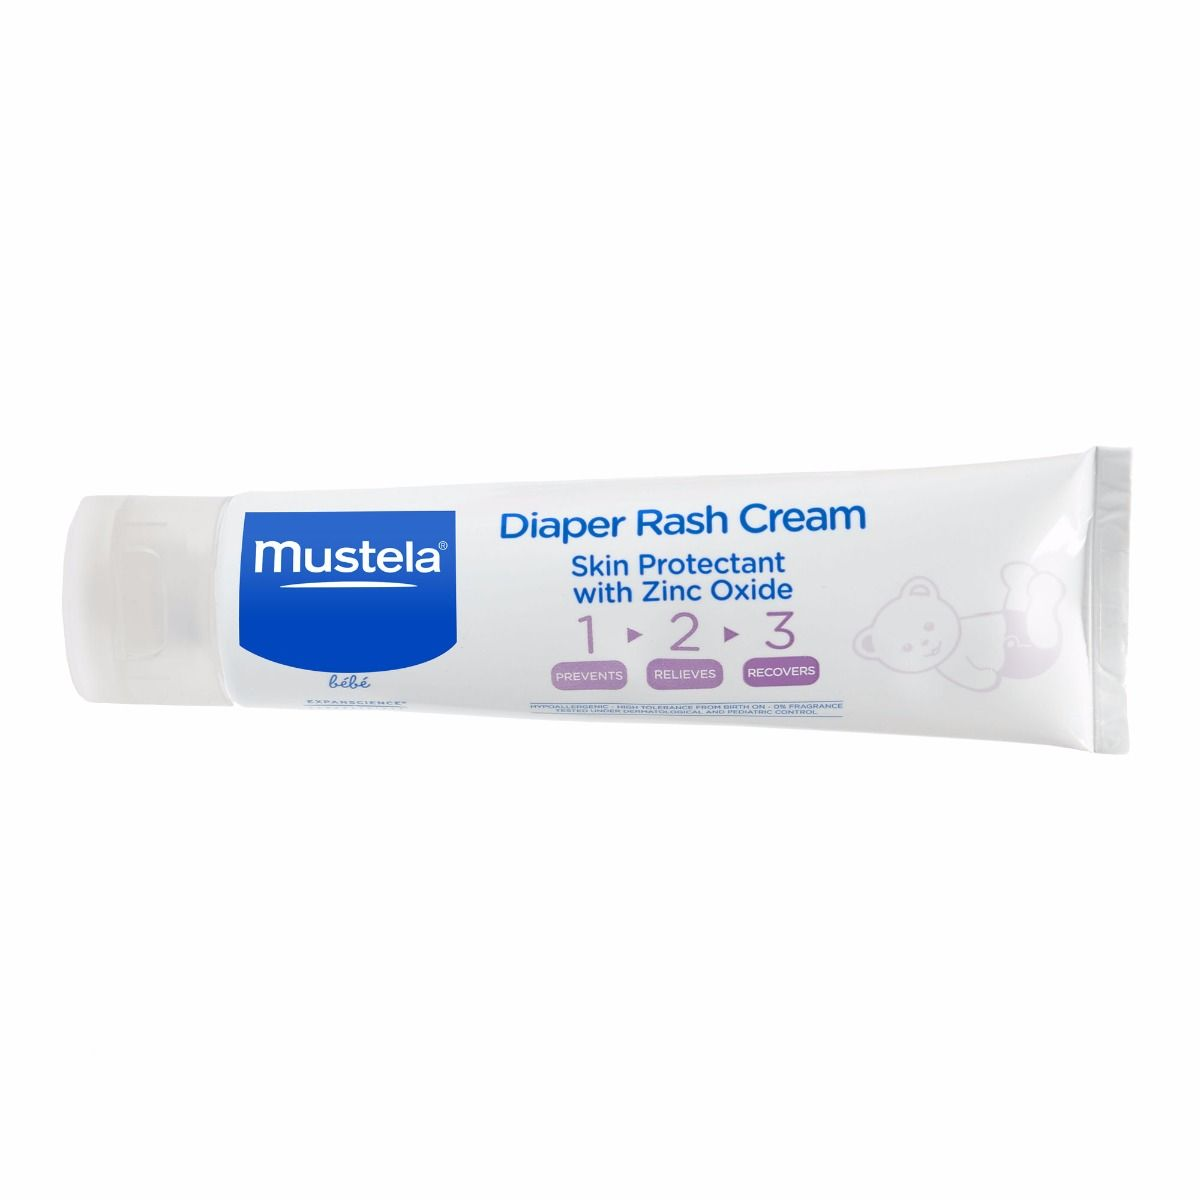 Mustela Baby 123 Diaper Rash Cream, Skin Protectant, 3.8 Oz by Mustela